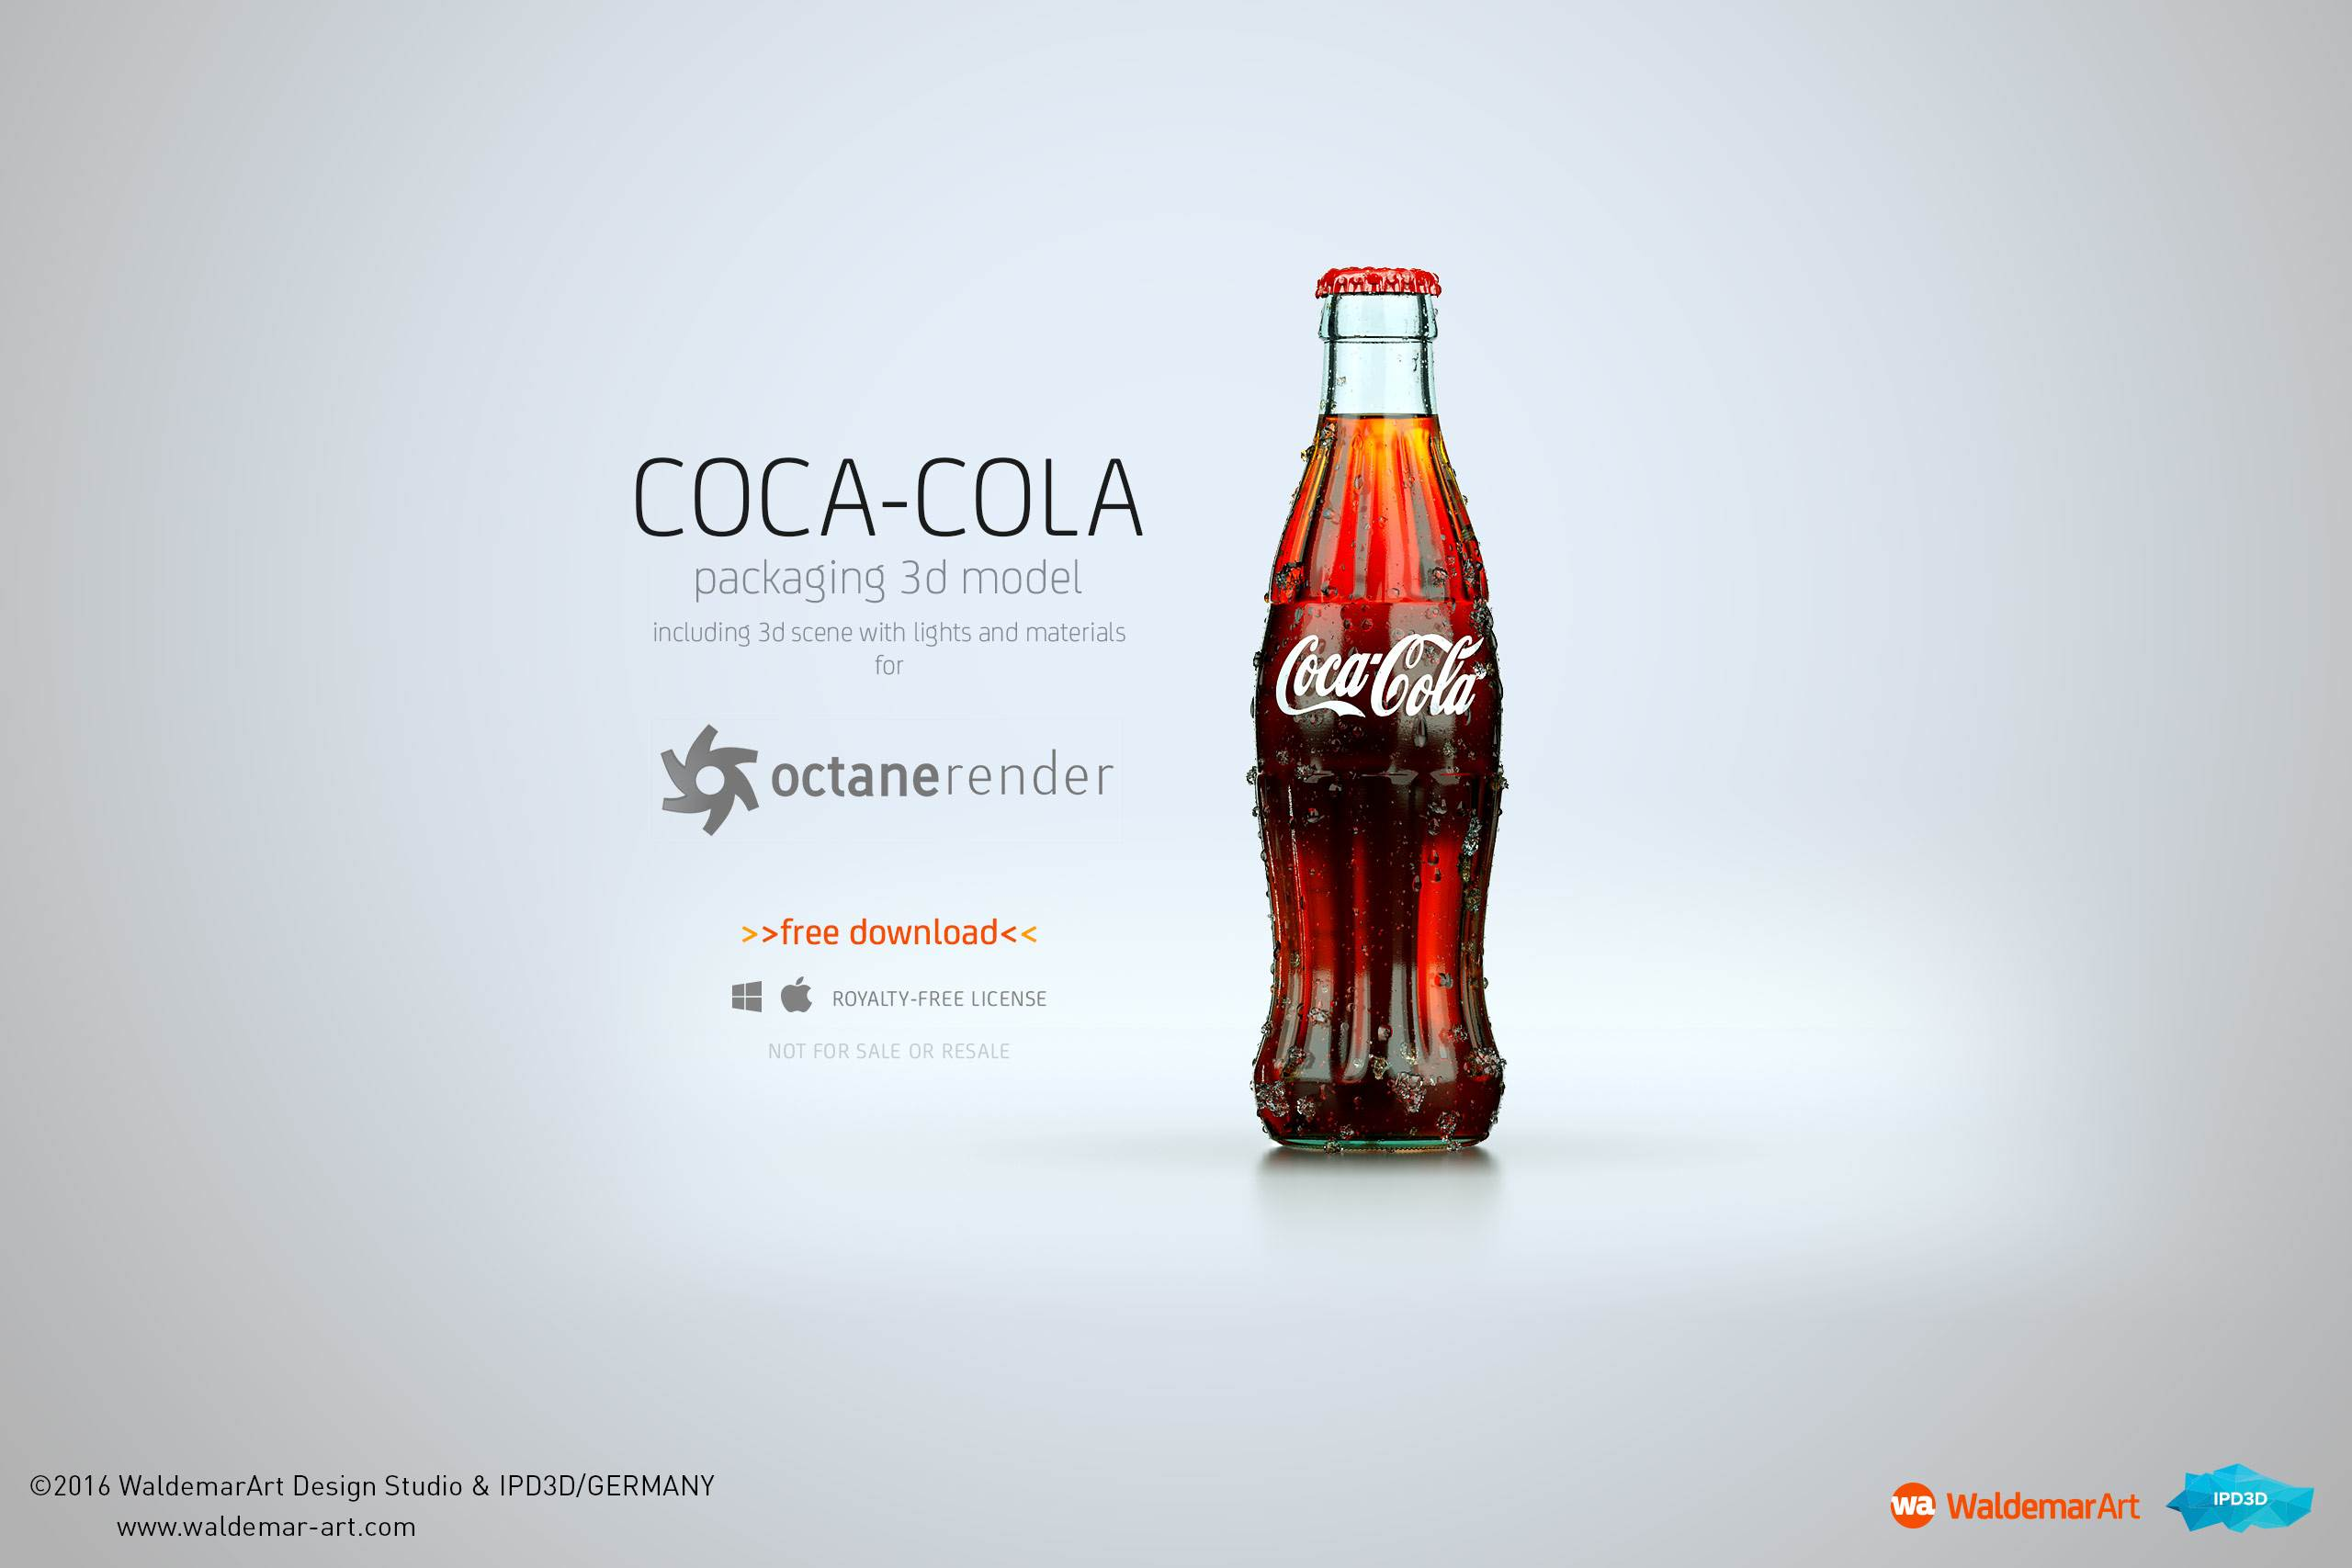 free packaging 3d model and scene of coca